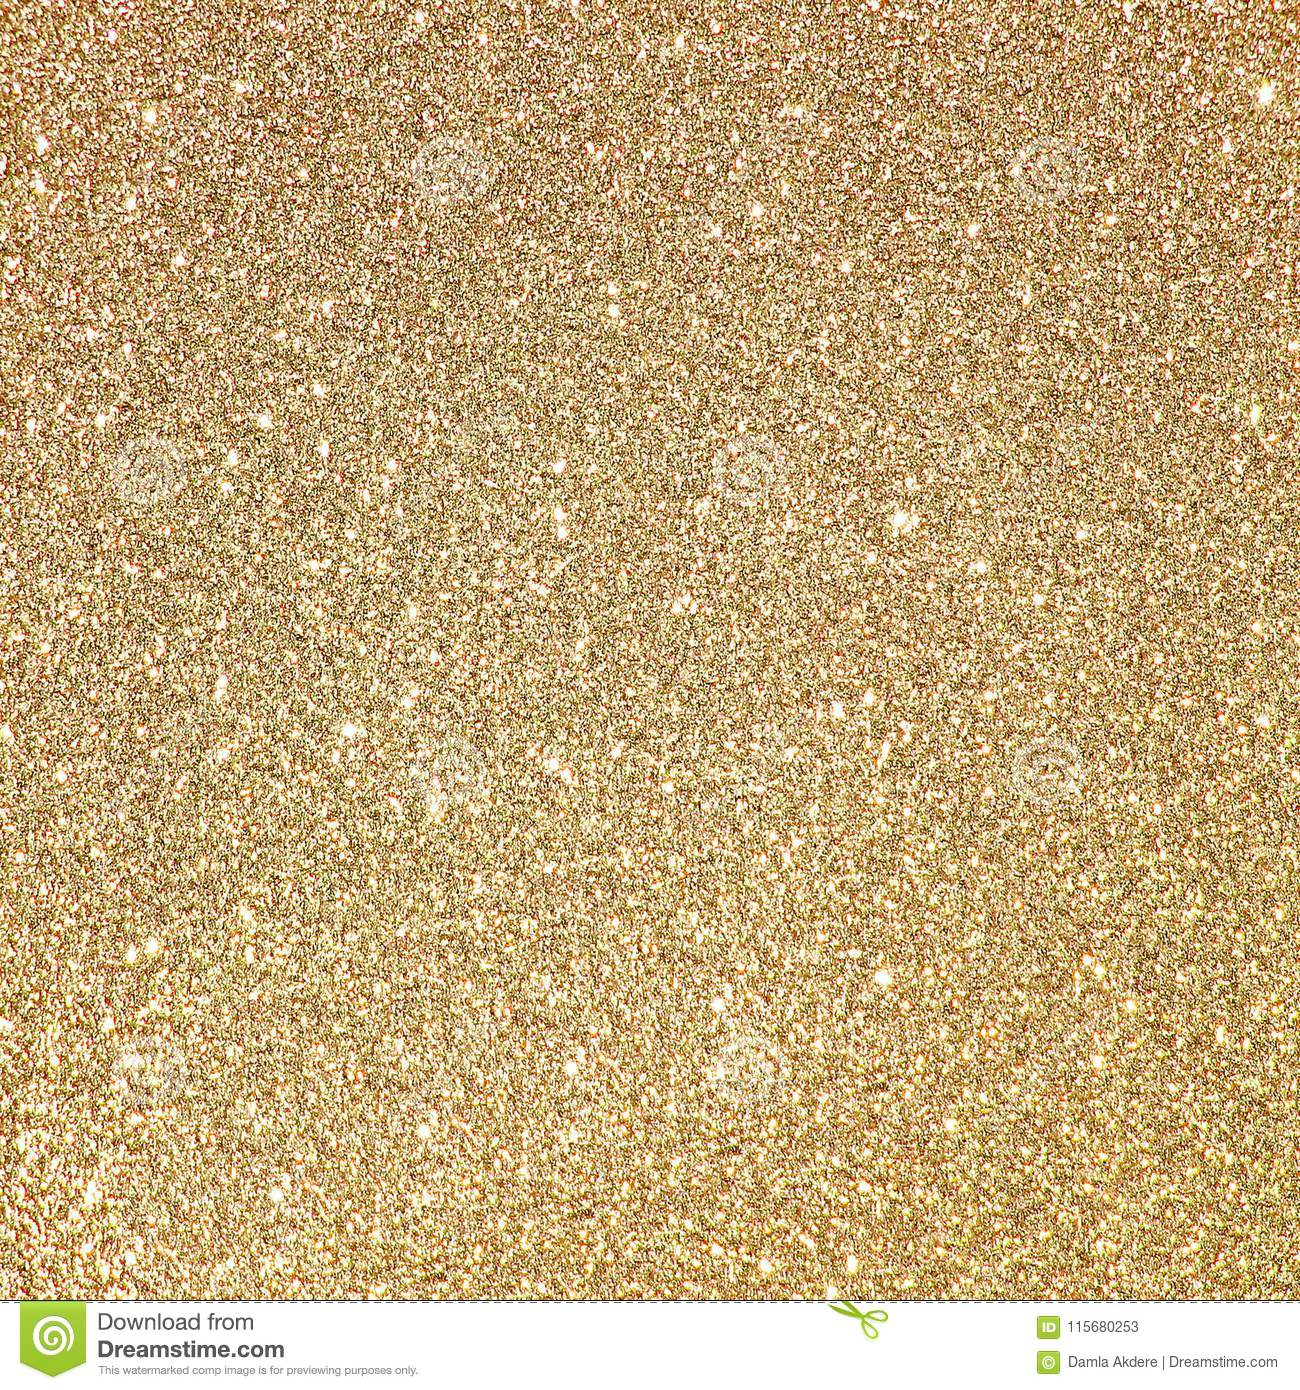 Gold Glitter background. Glitter texture. Gold glitter pattern. Glitter Wallpaper. Shine Background.